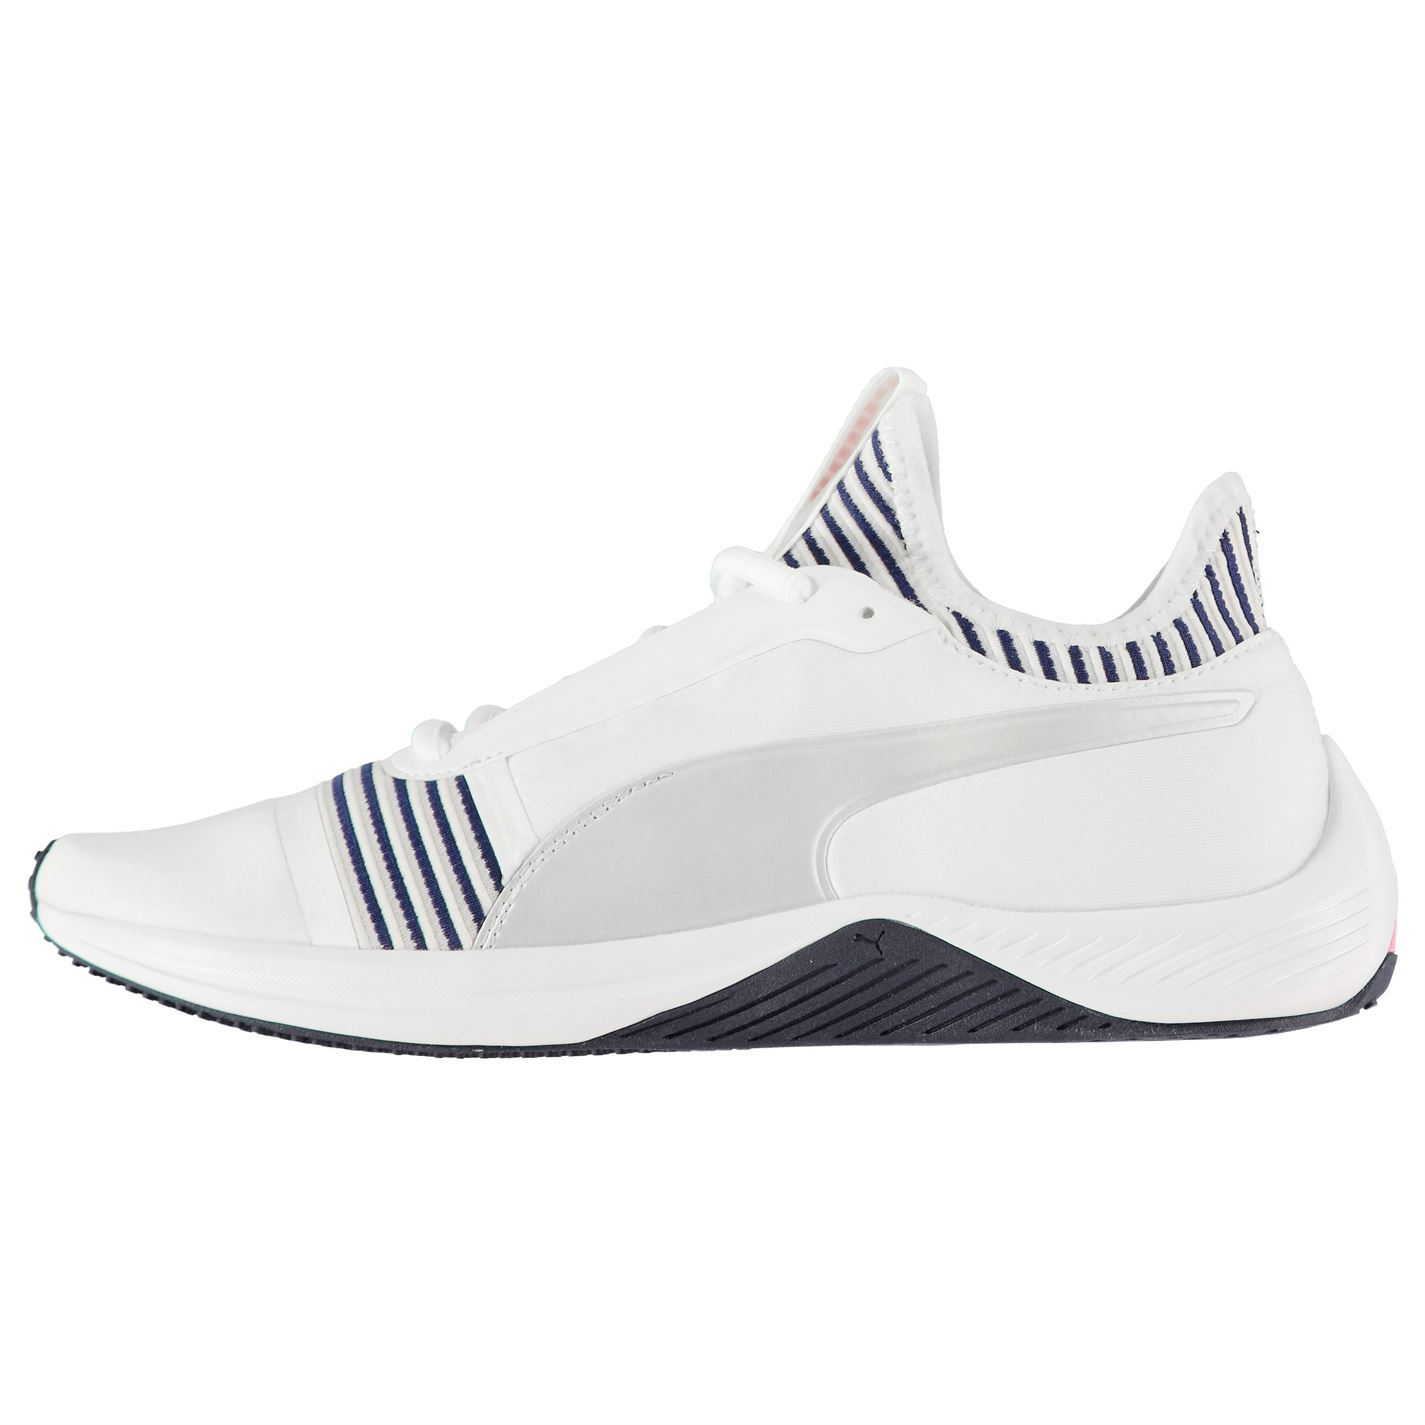 Details about Puma Amp XT Training Shoes Womens Fitness Gym Workout Trainers Sneakers Footwear